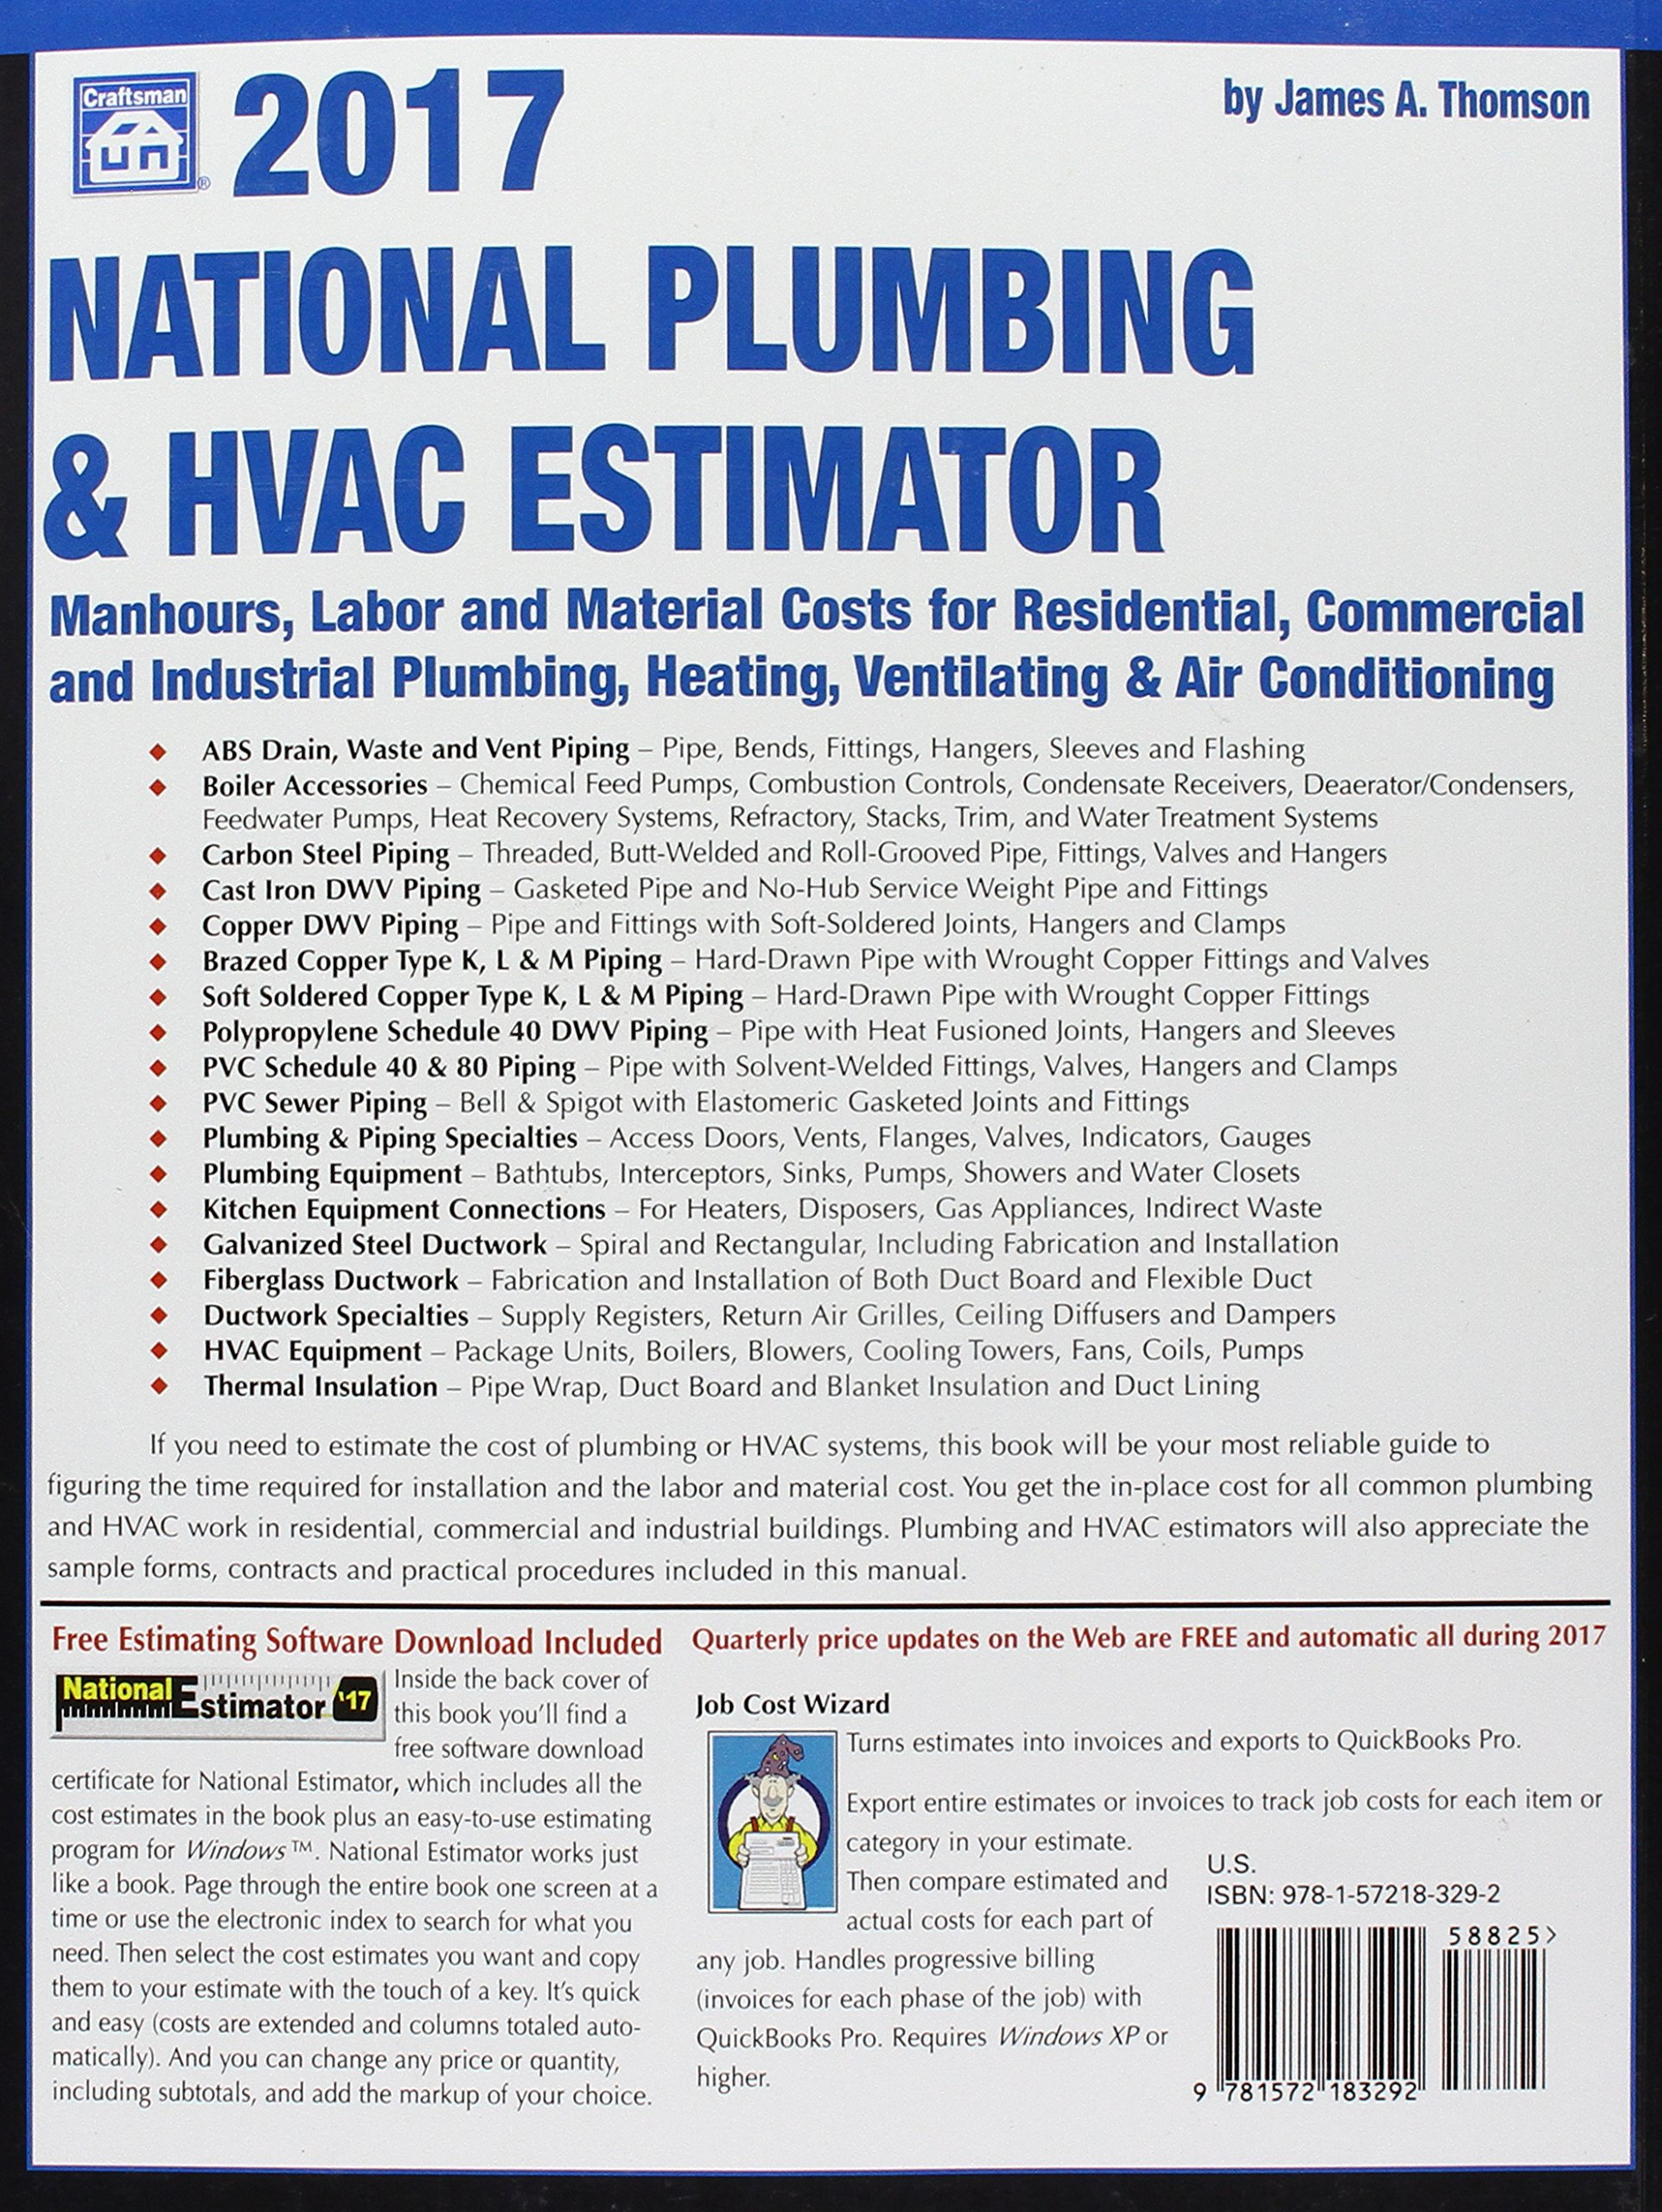 2017 national plumbing hvac estimator james a thomson 9781572183292 books amazonca - Hvac Estimator